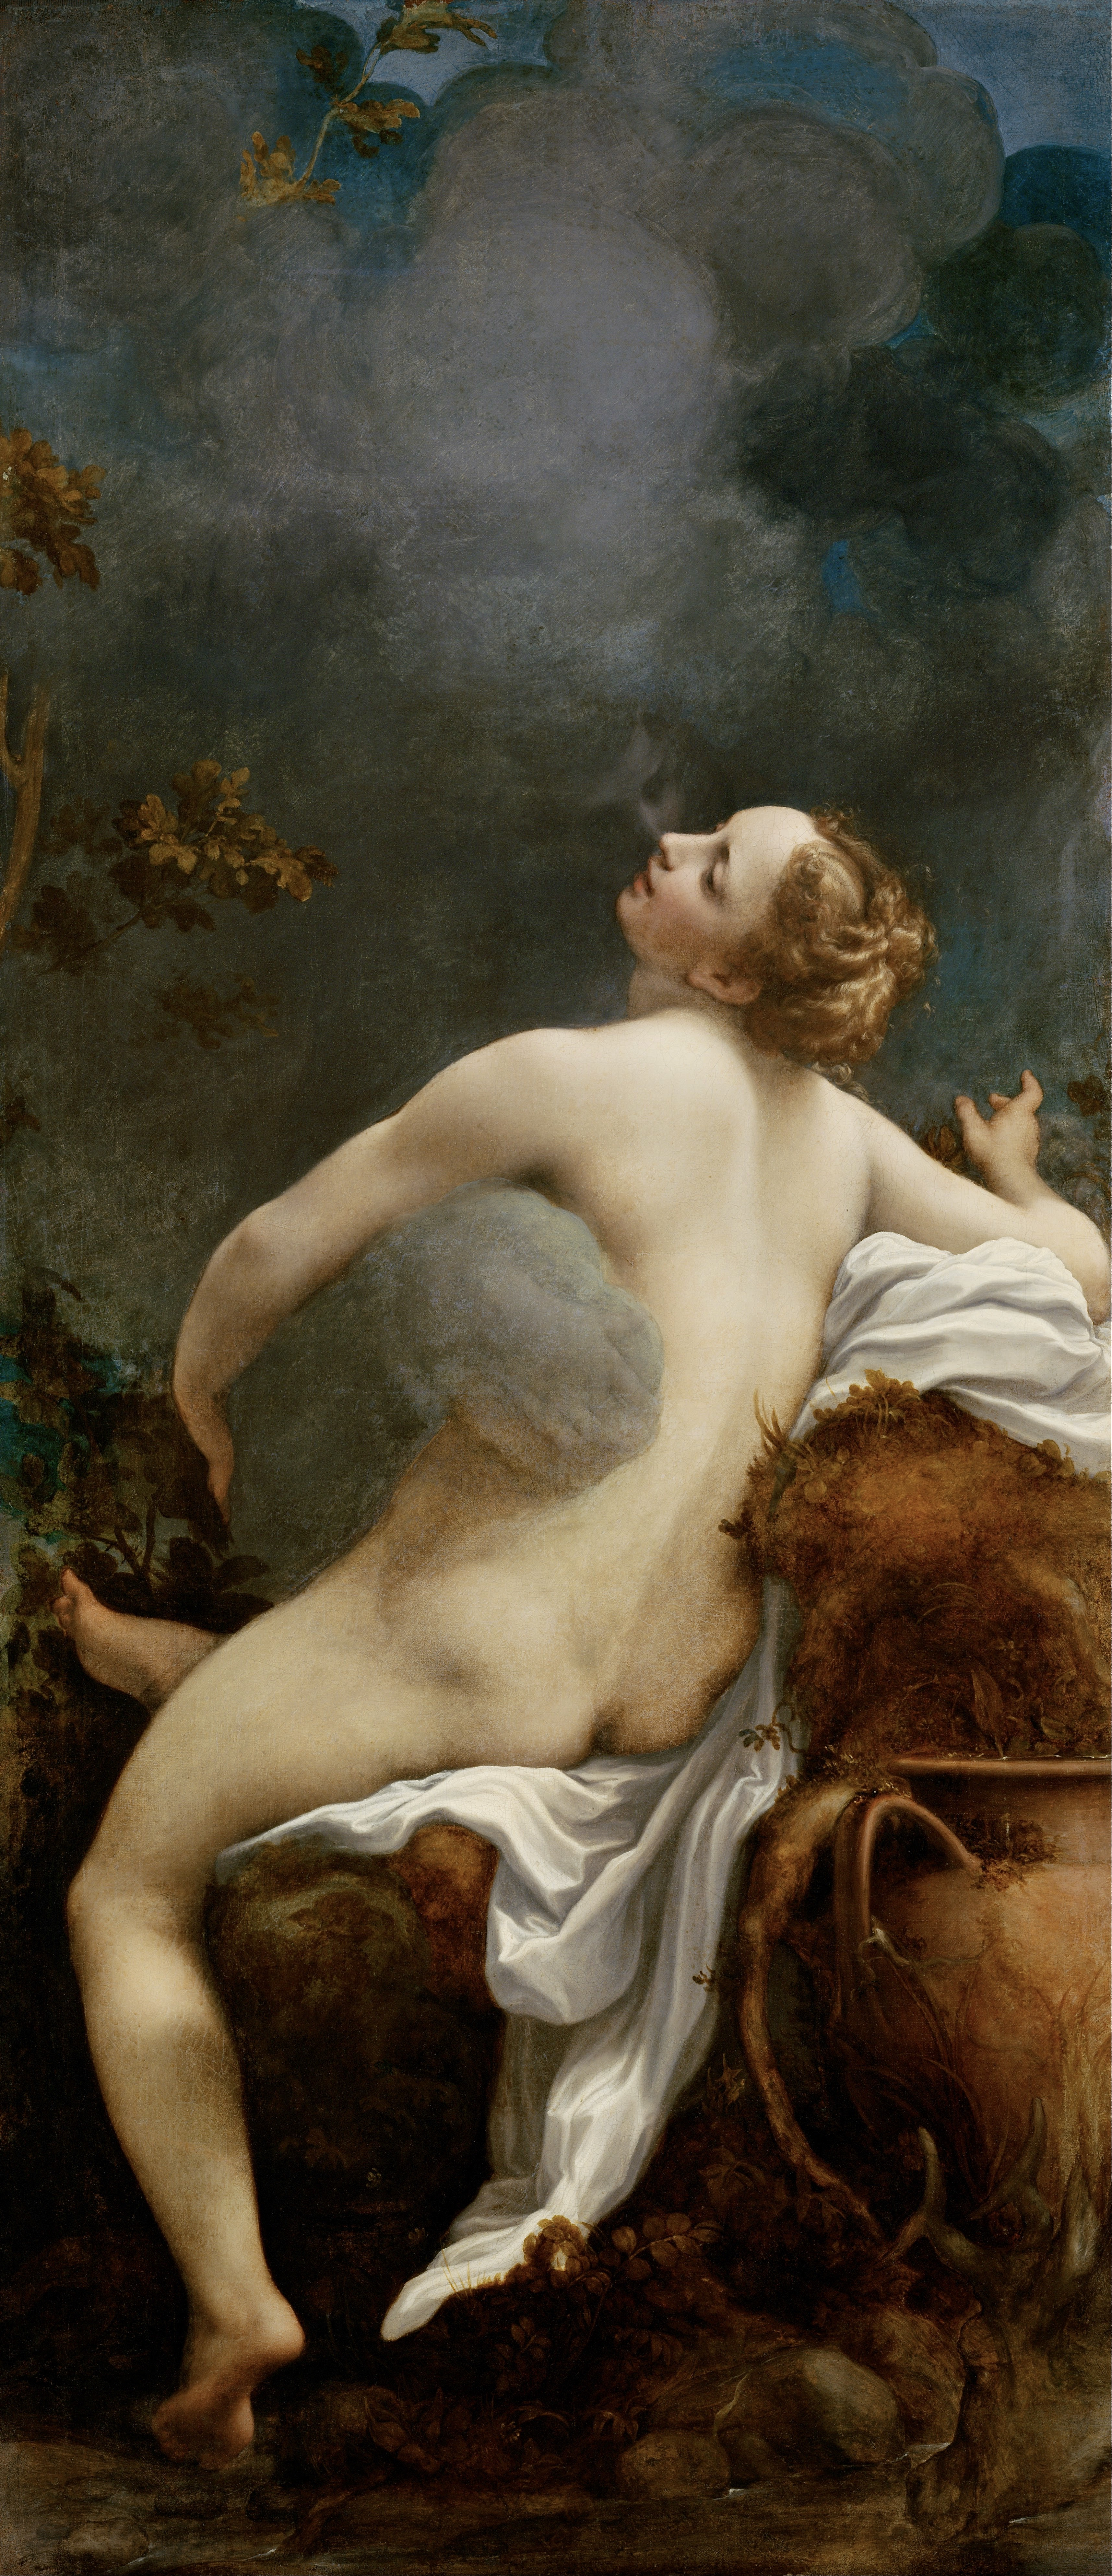 Antonio_Allegri,_called_Correggio_-_Jupiter_and_Io_-_Google_Art_Project